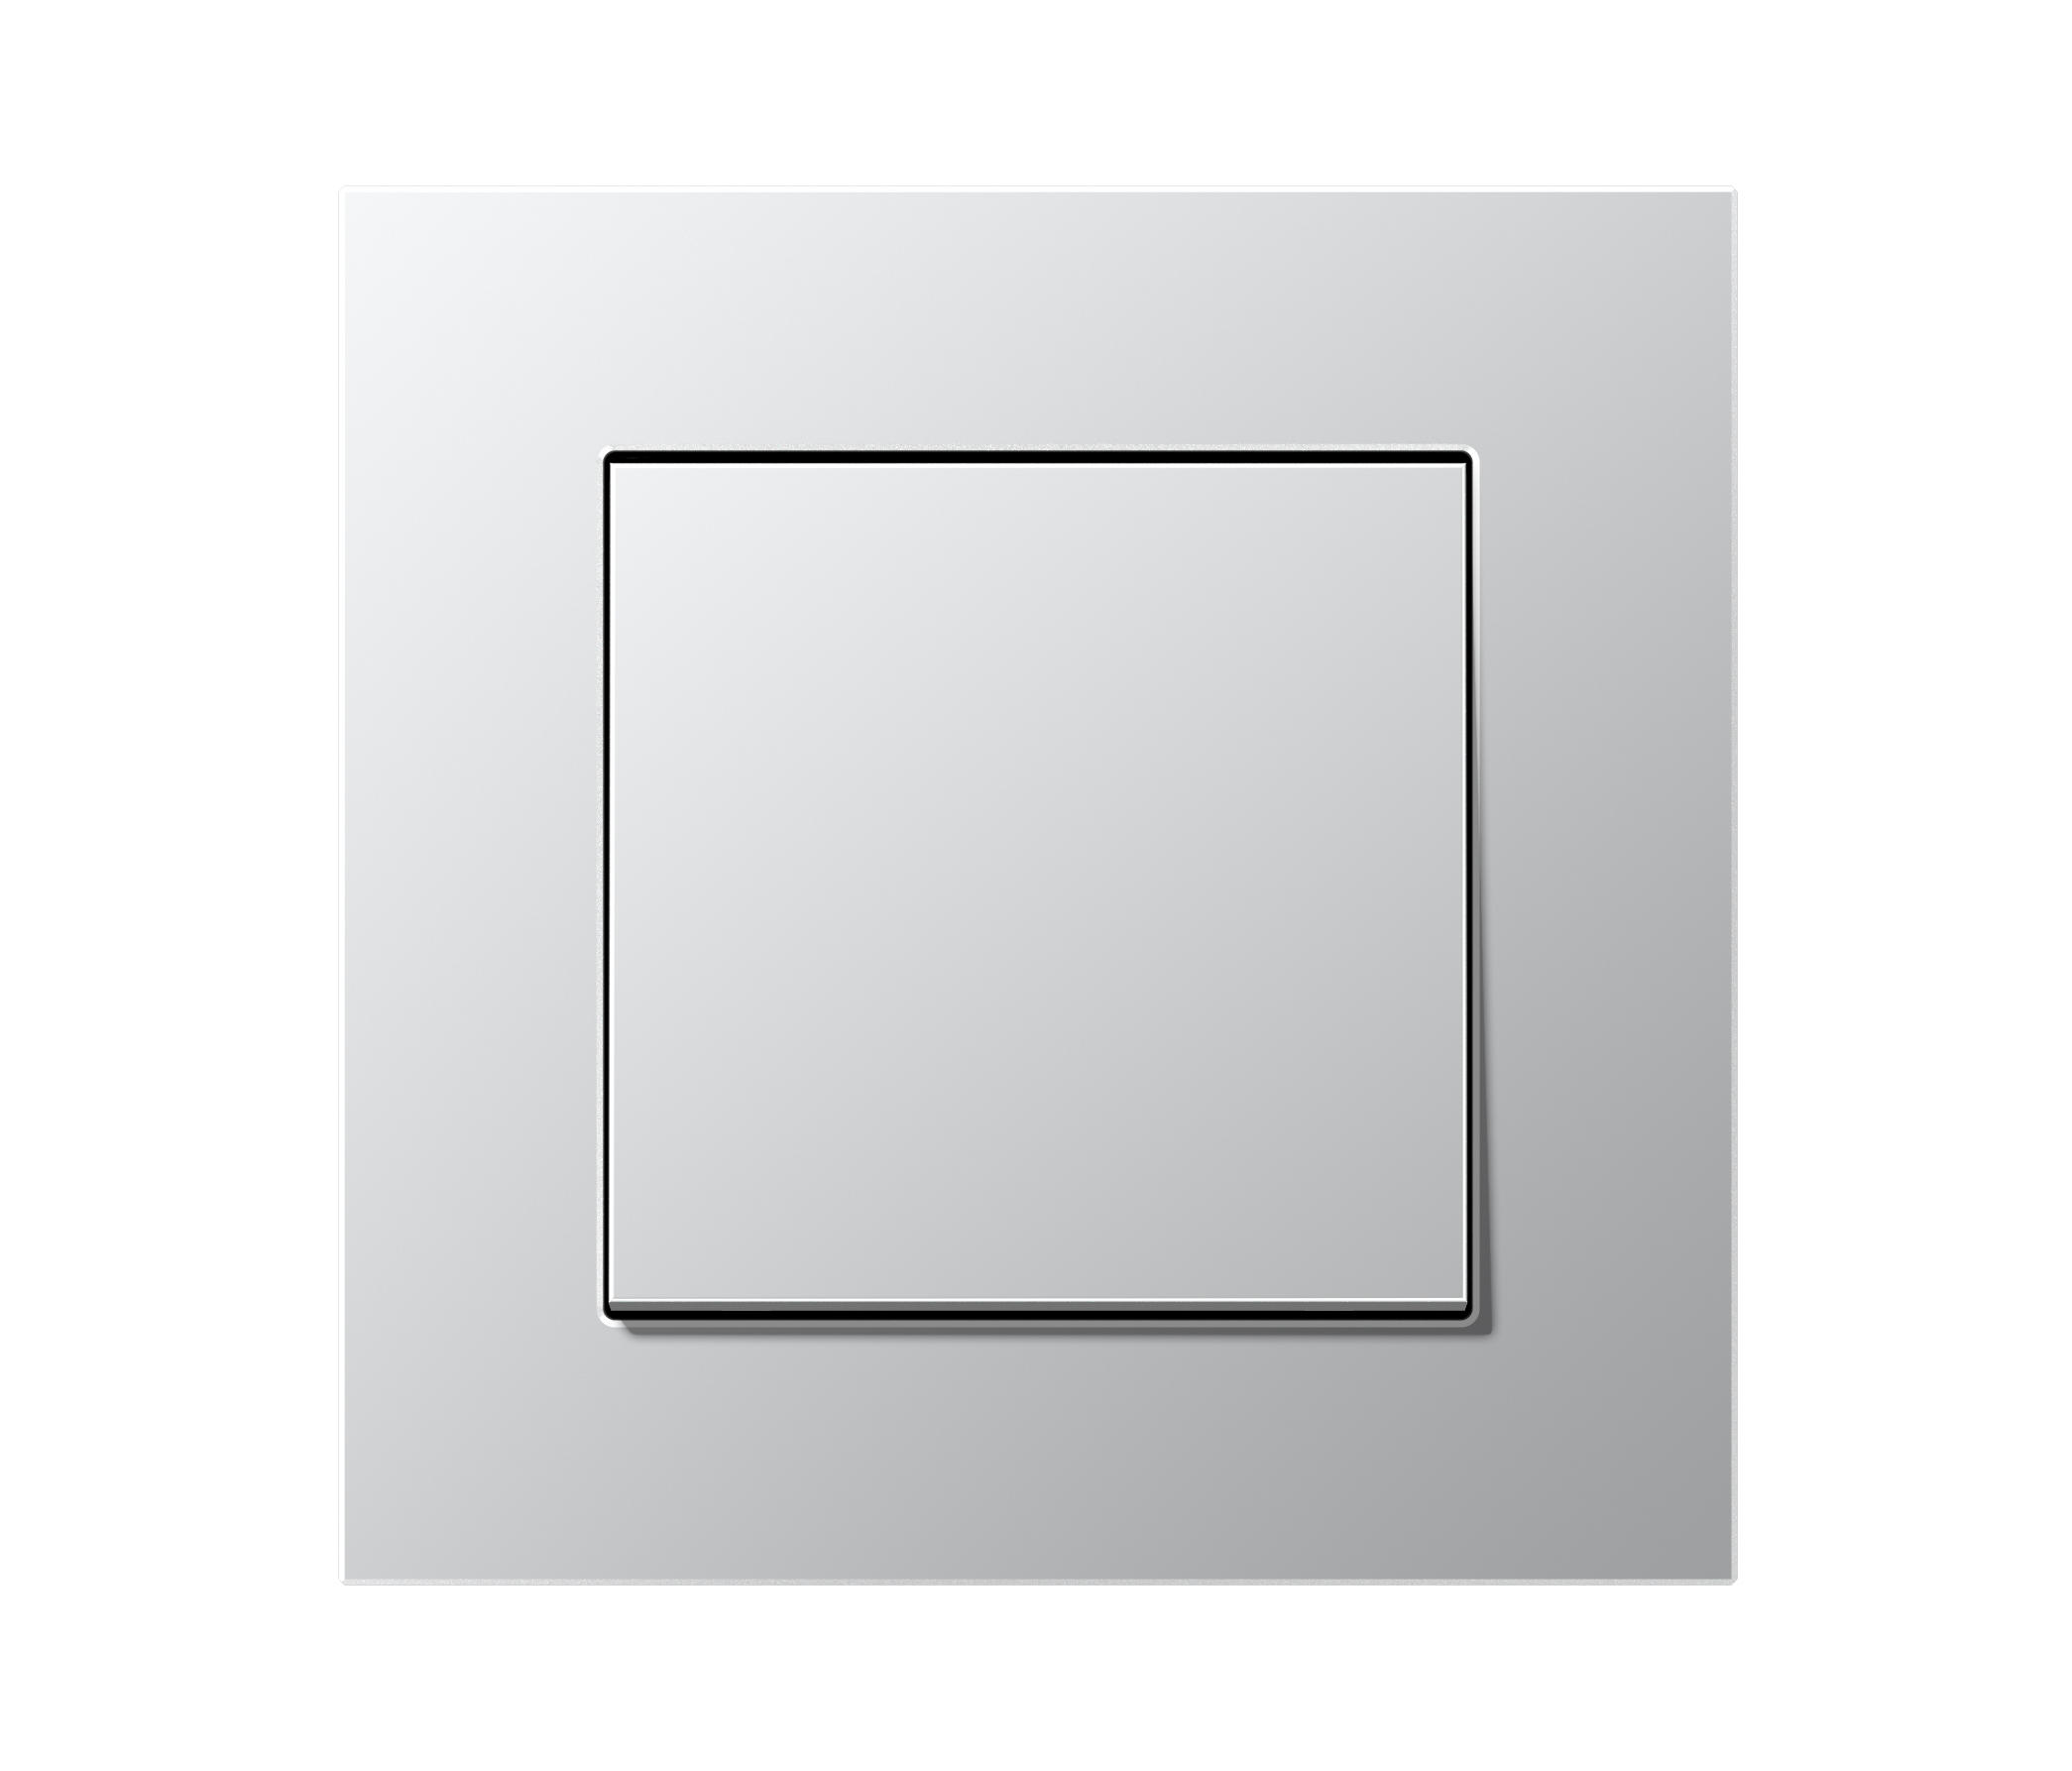 LS PLUS SWITCH ALUMINIUM - Two-way switches from JUNG | Architonic